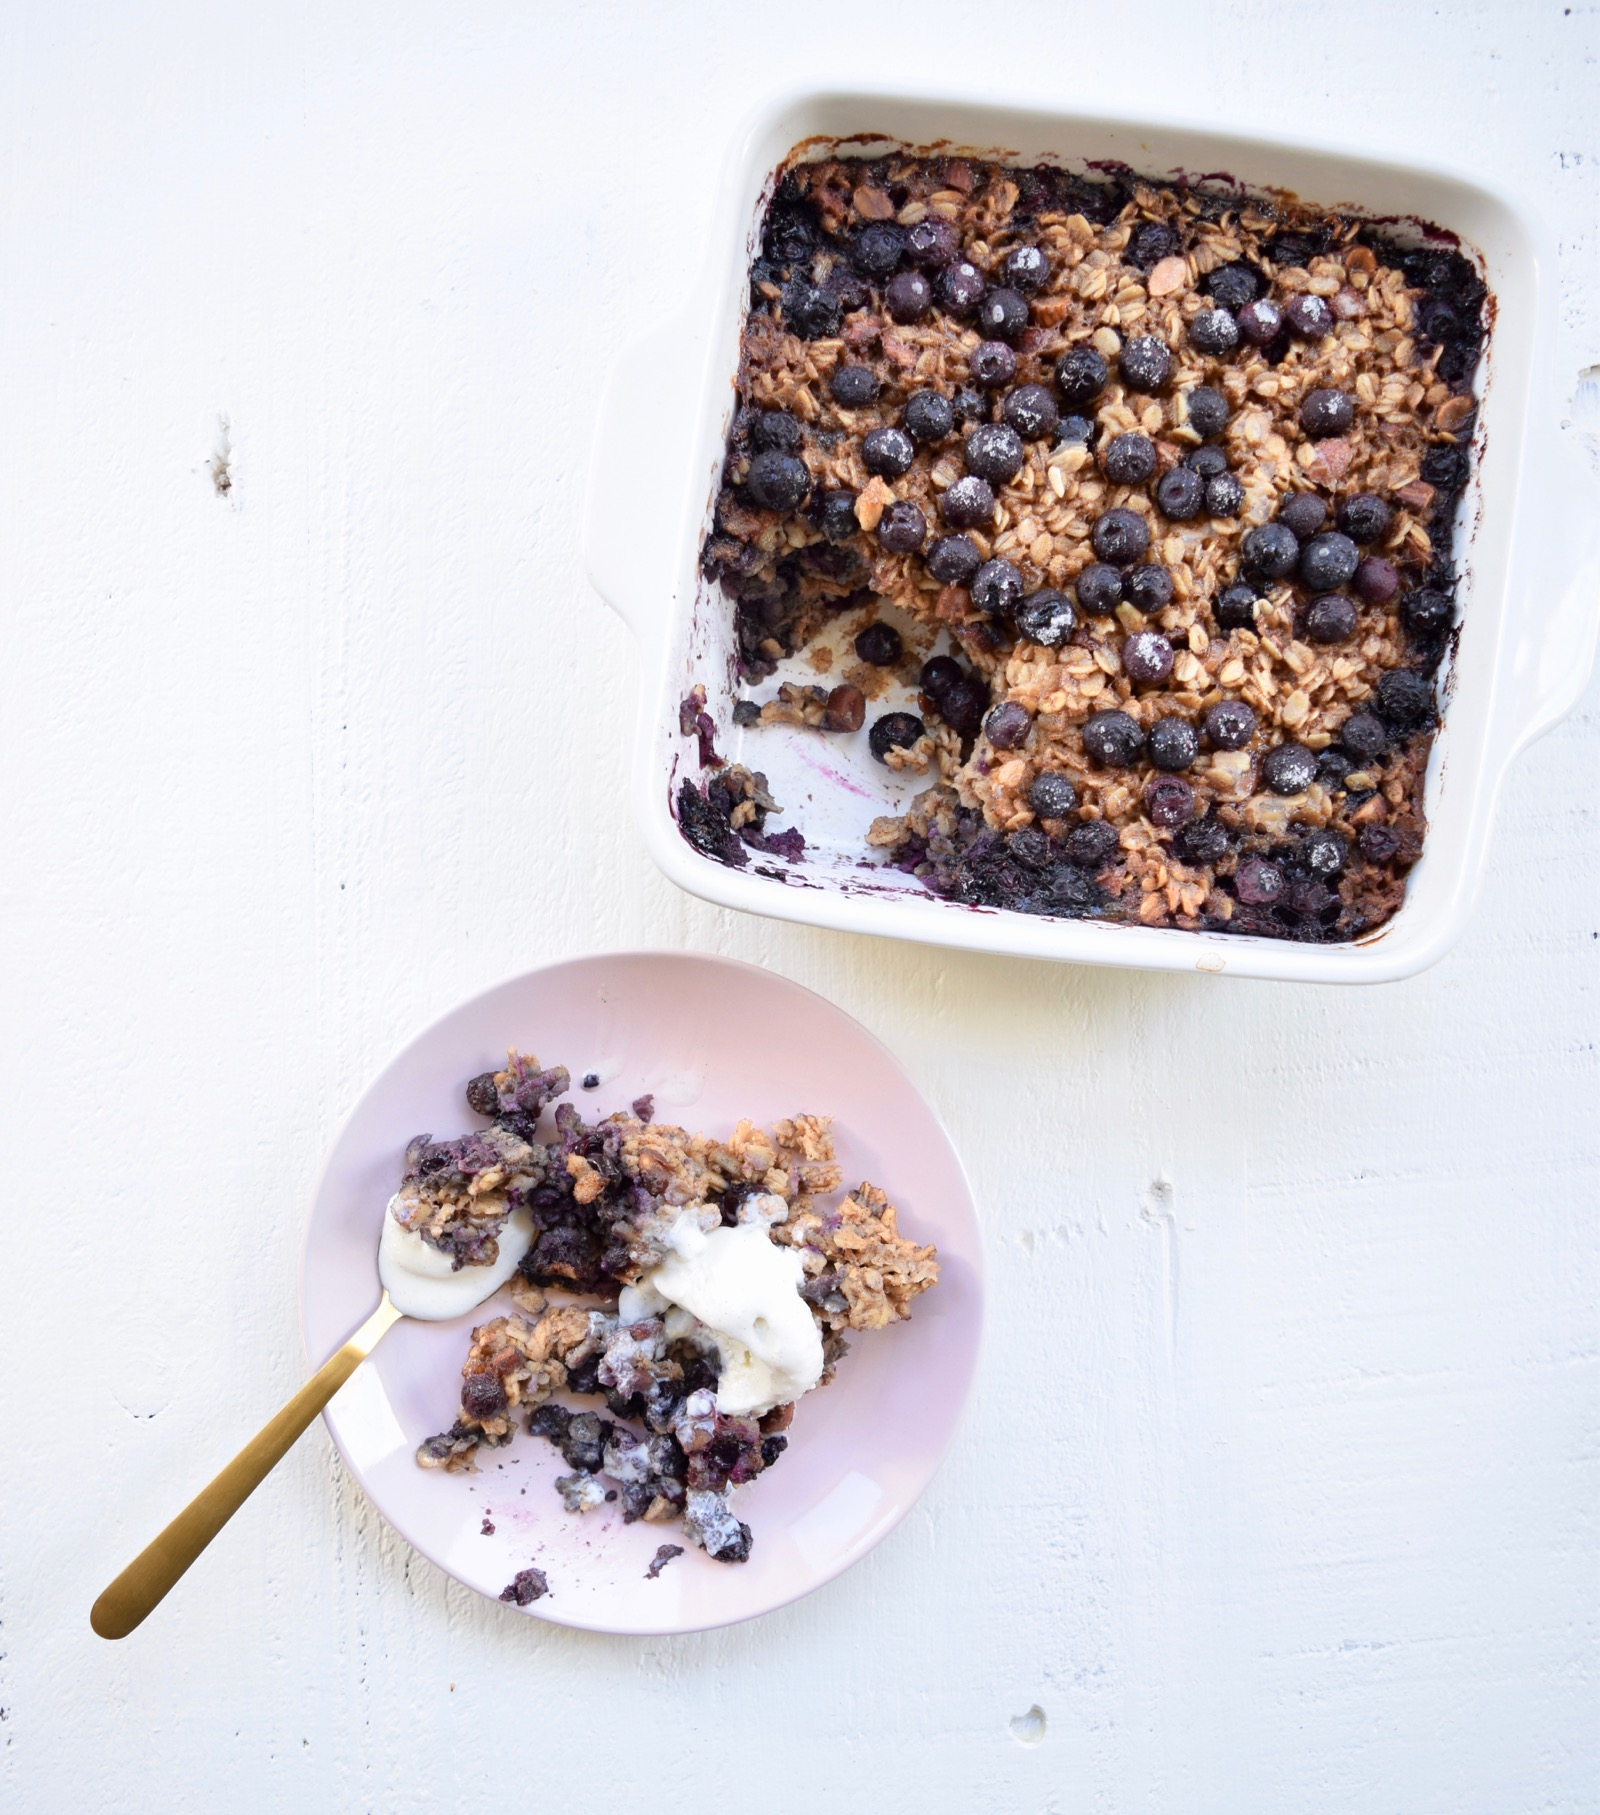 Baked Blueberry Oatmeal Recipe